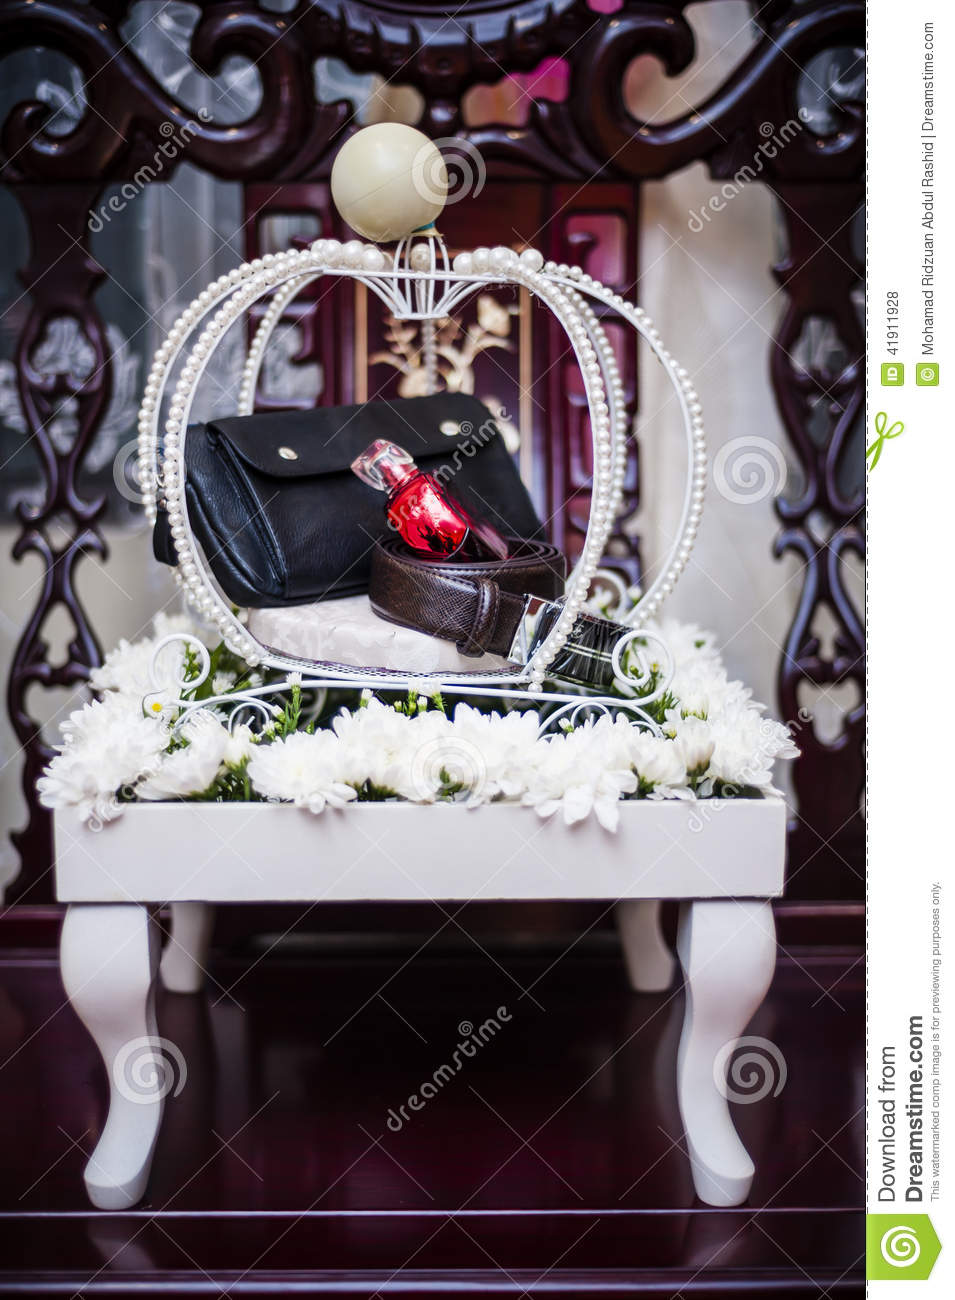 Decoración del regalo de boda